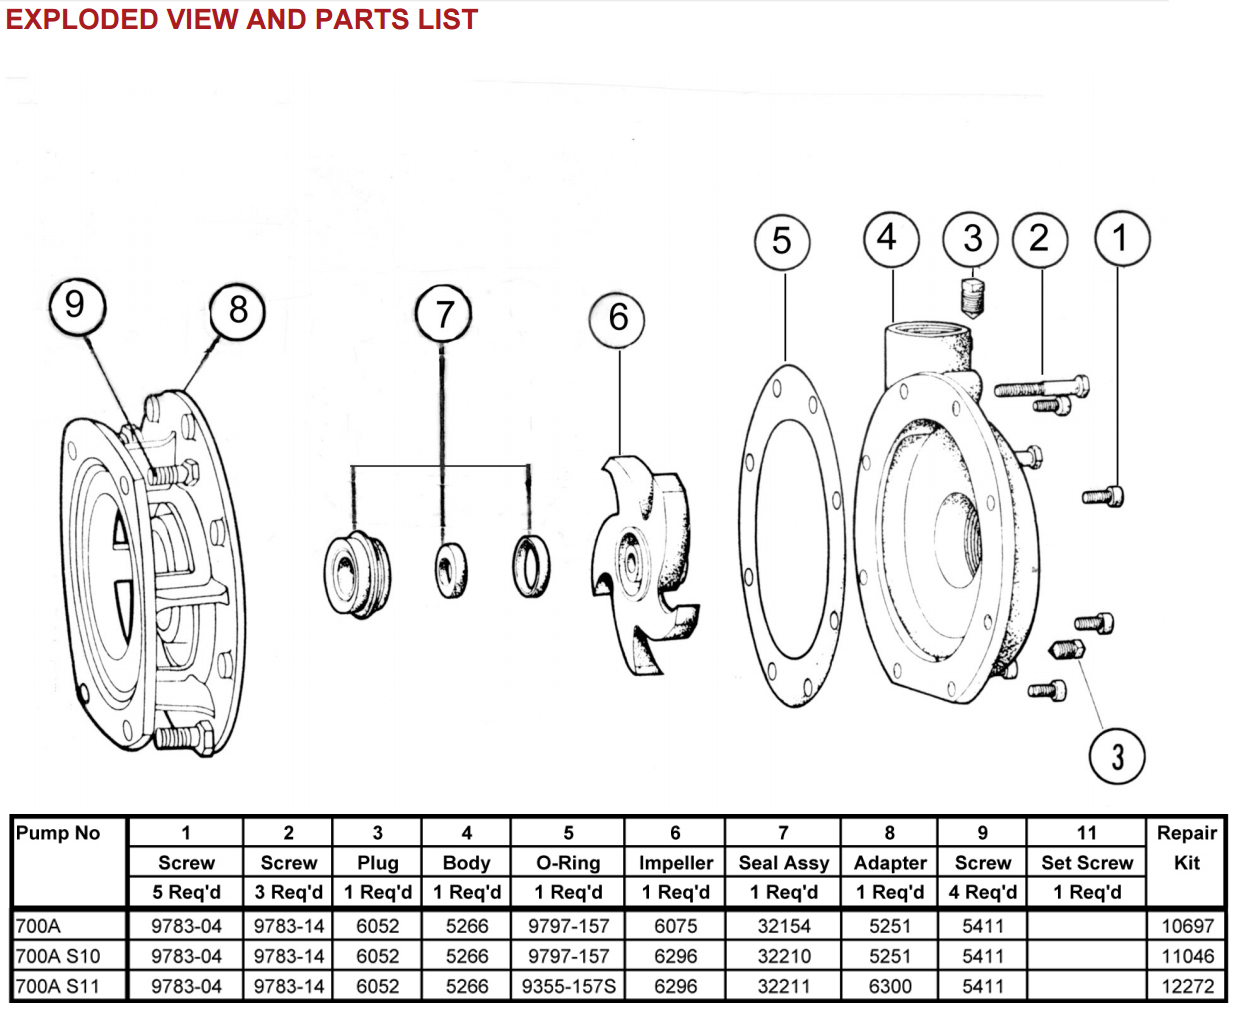 Oberdorfer 700A Exploded View and Parts List